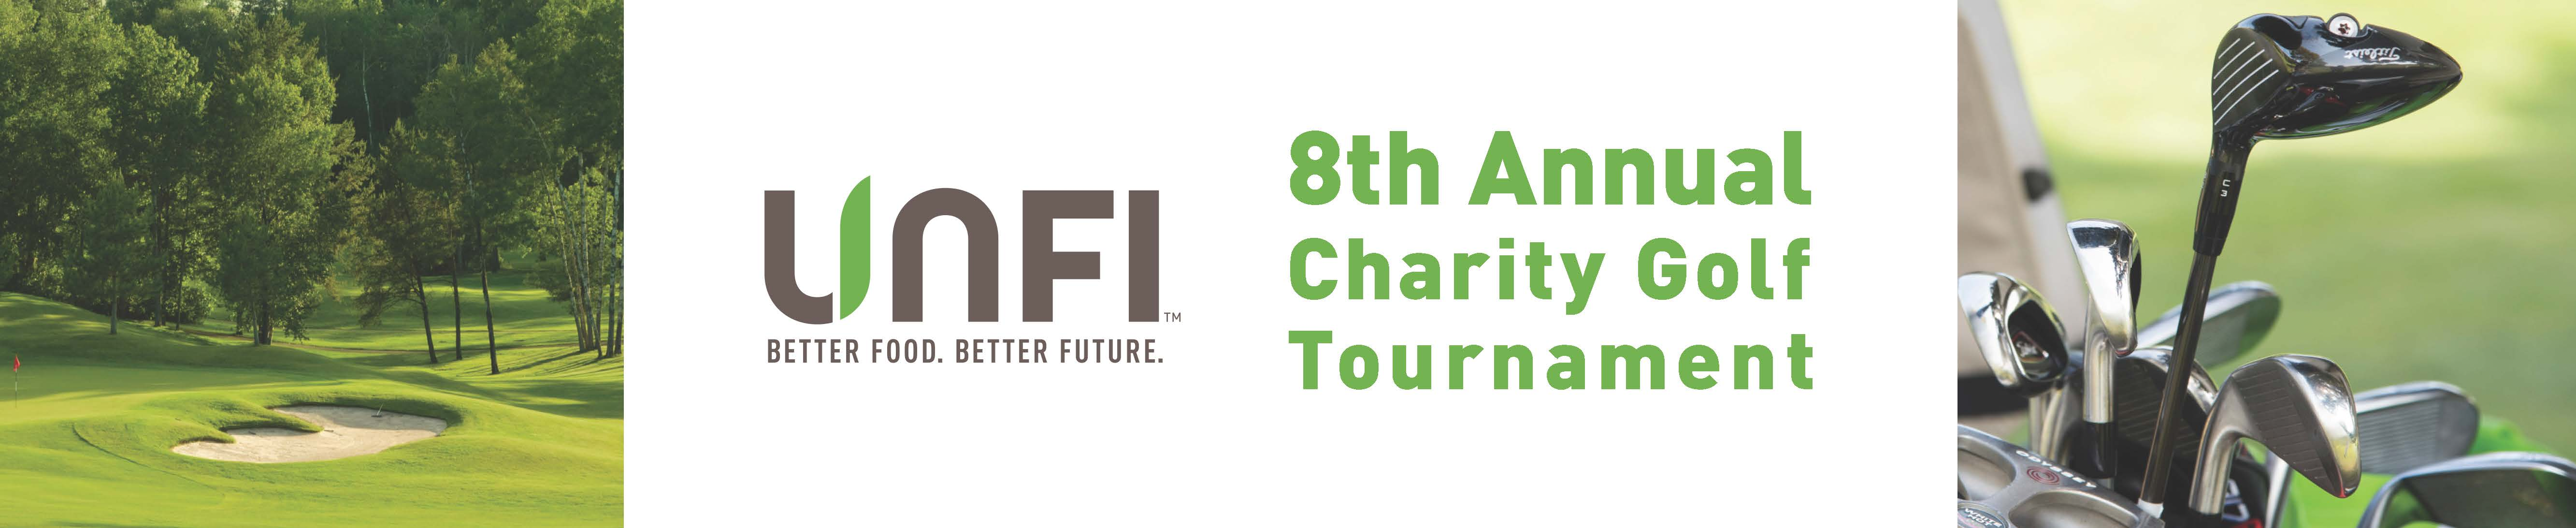 8th Annual UNFI Charity Golf Tournament